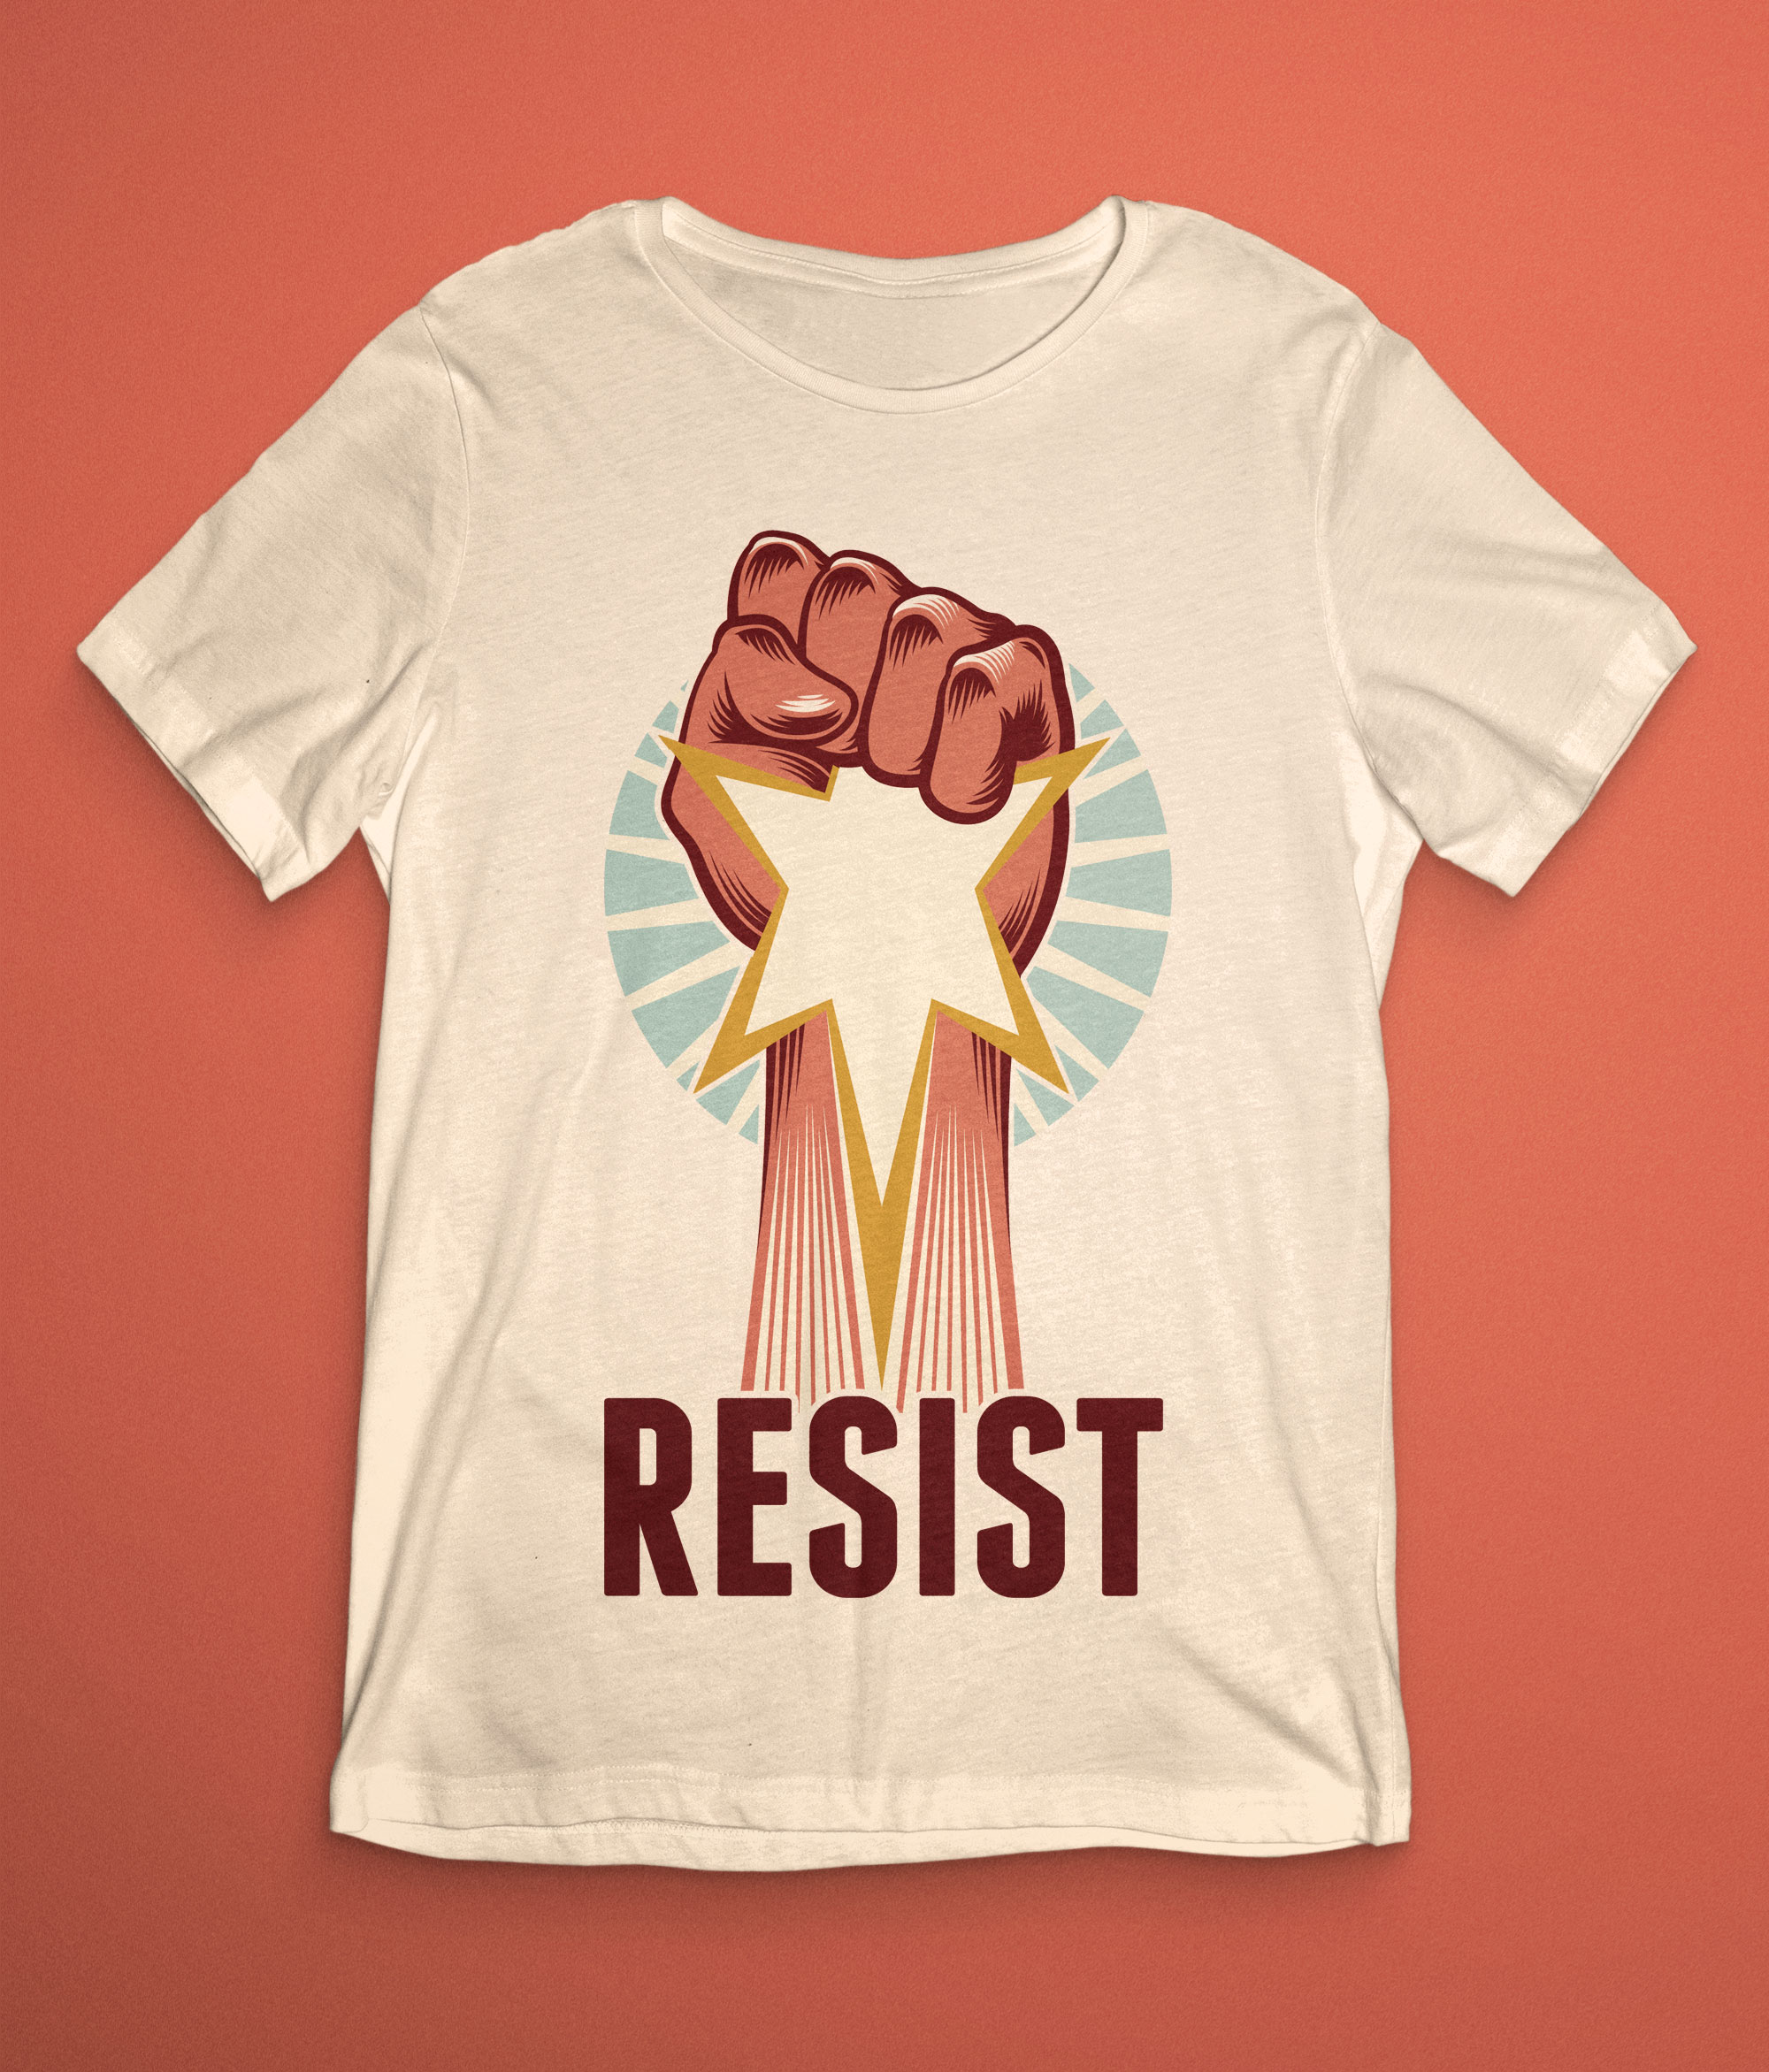 Resist-shirtmockup.jpg